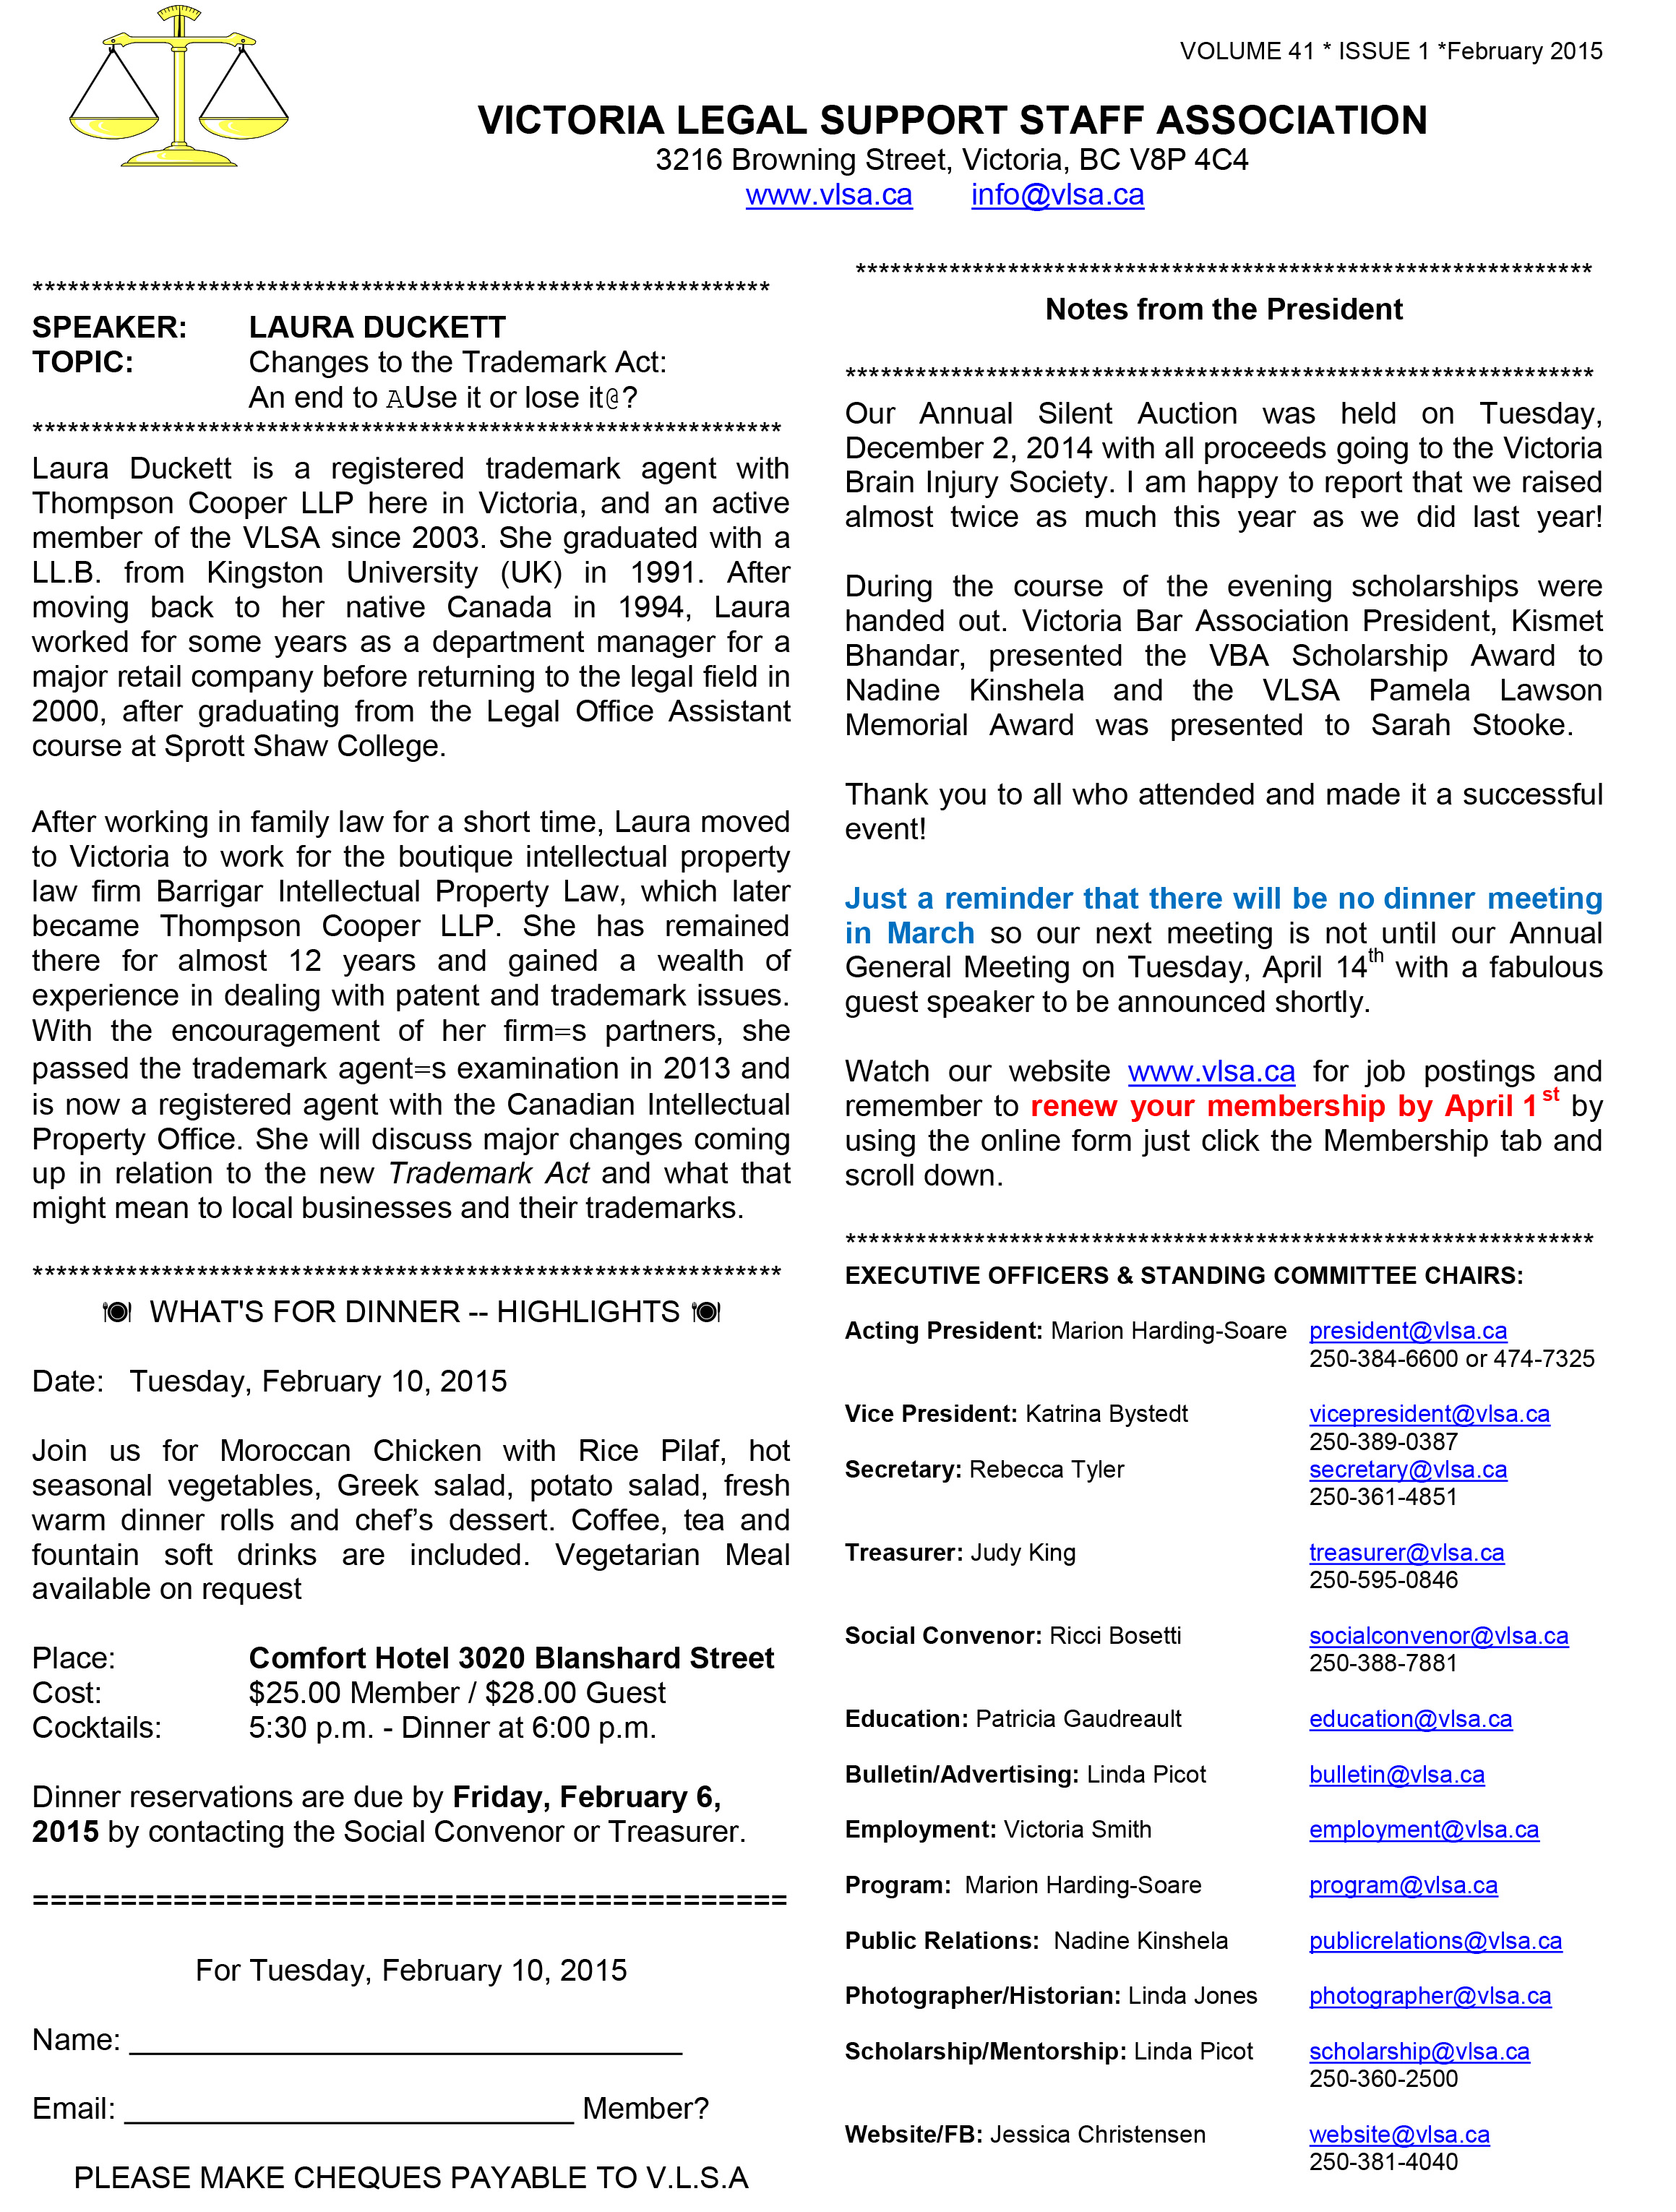 Microsoft Word - VLSA Bulletin Feb 2015